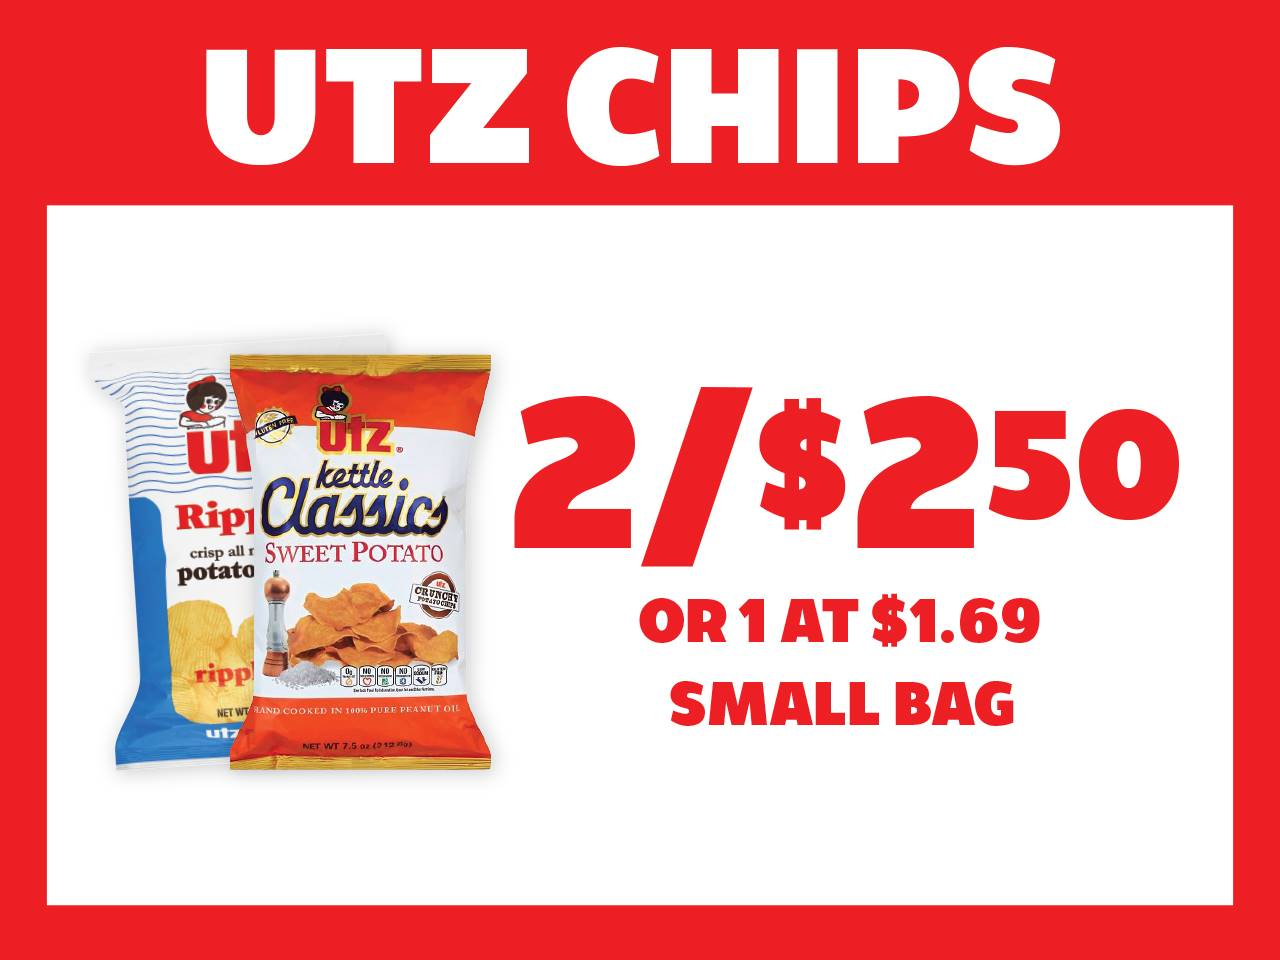 Small Bag Utz Chips 2 for $2.50 or 1 at $1.69